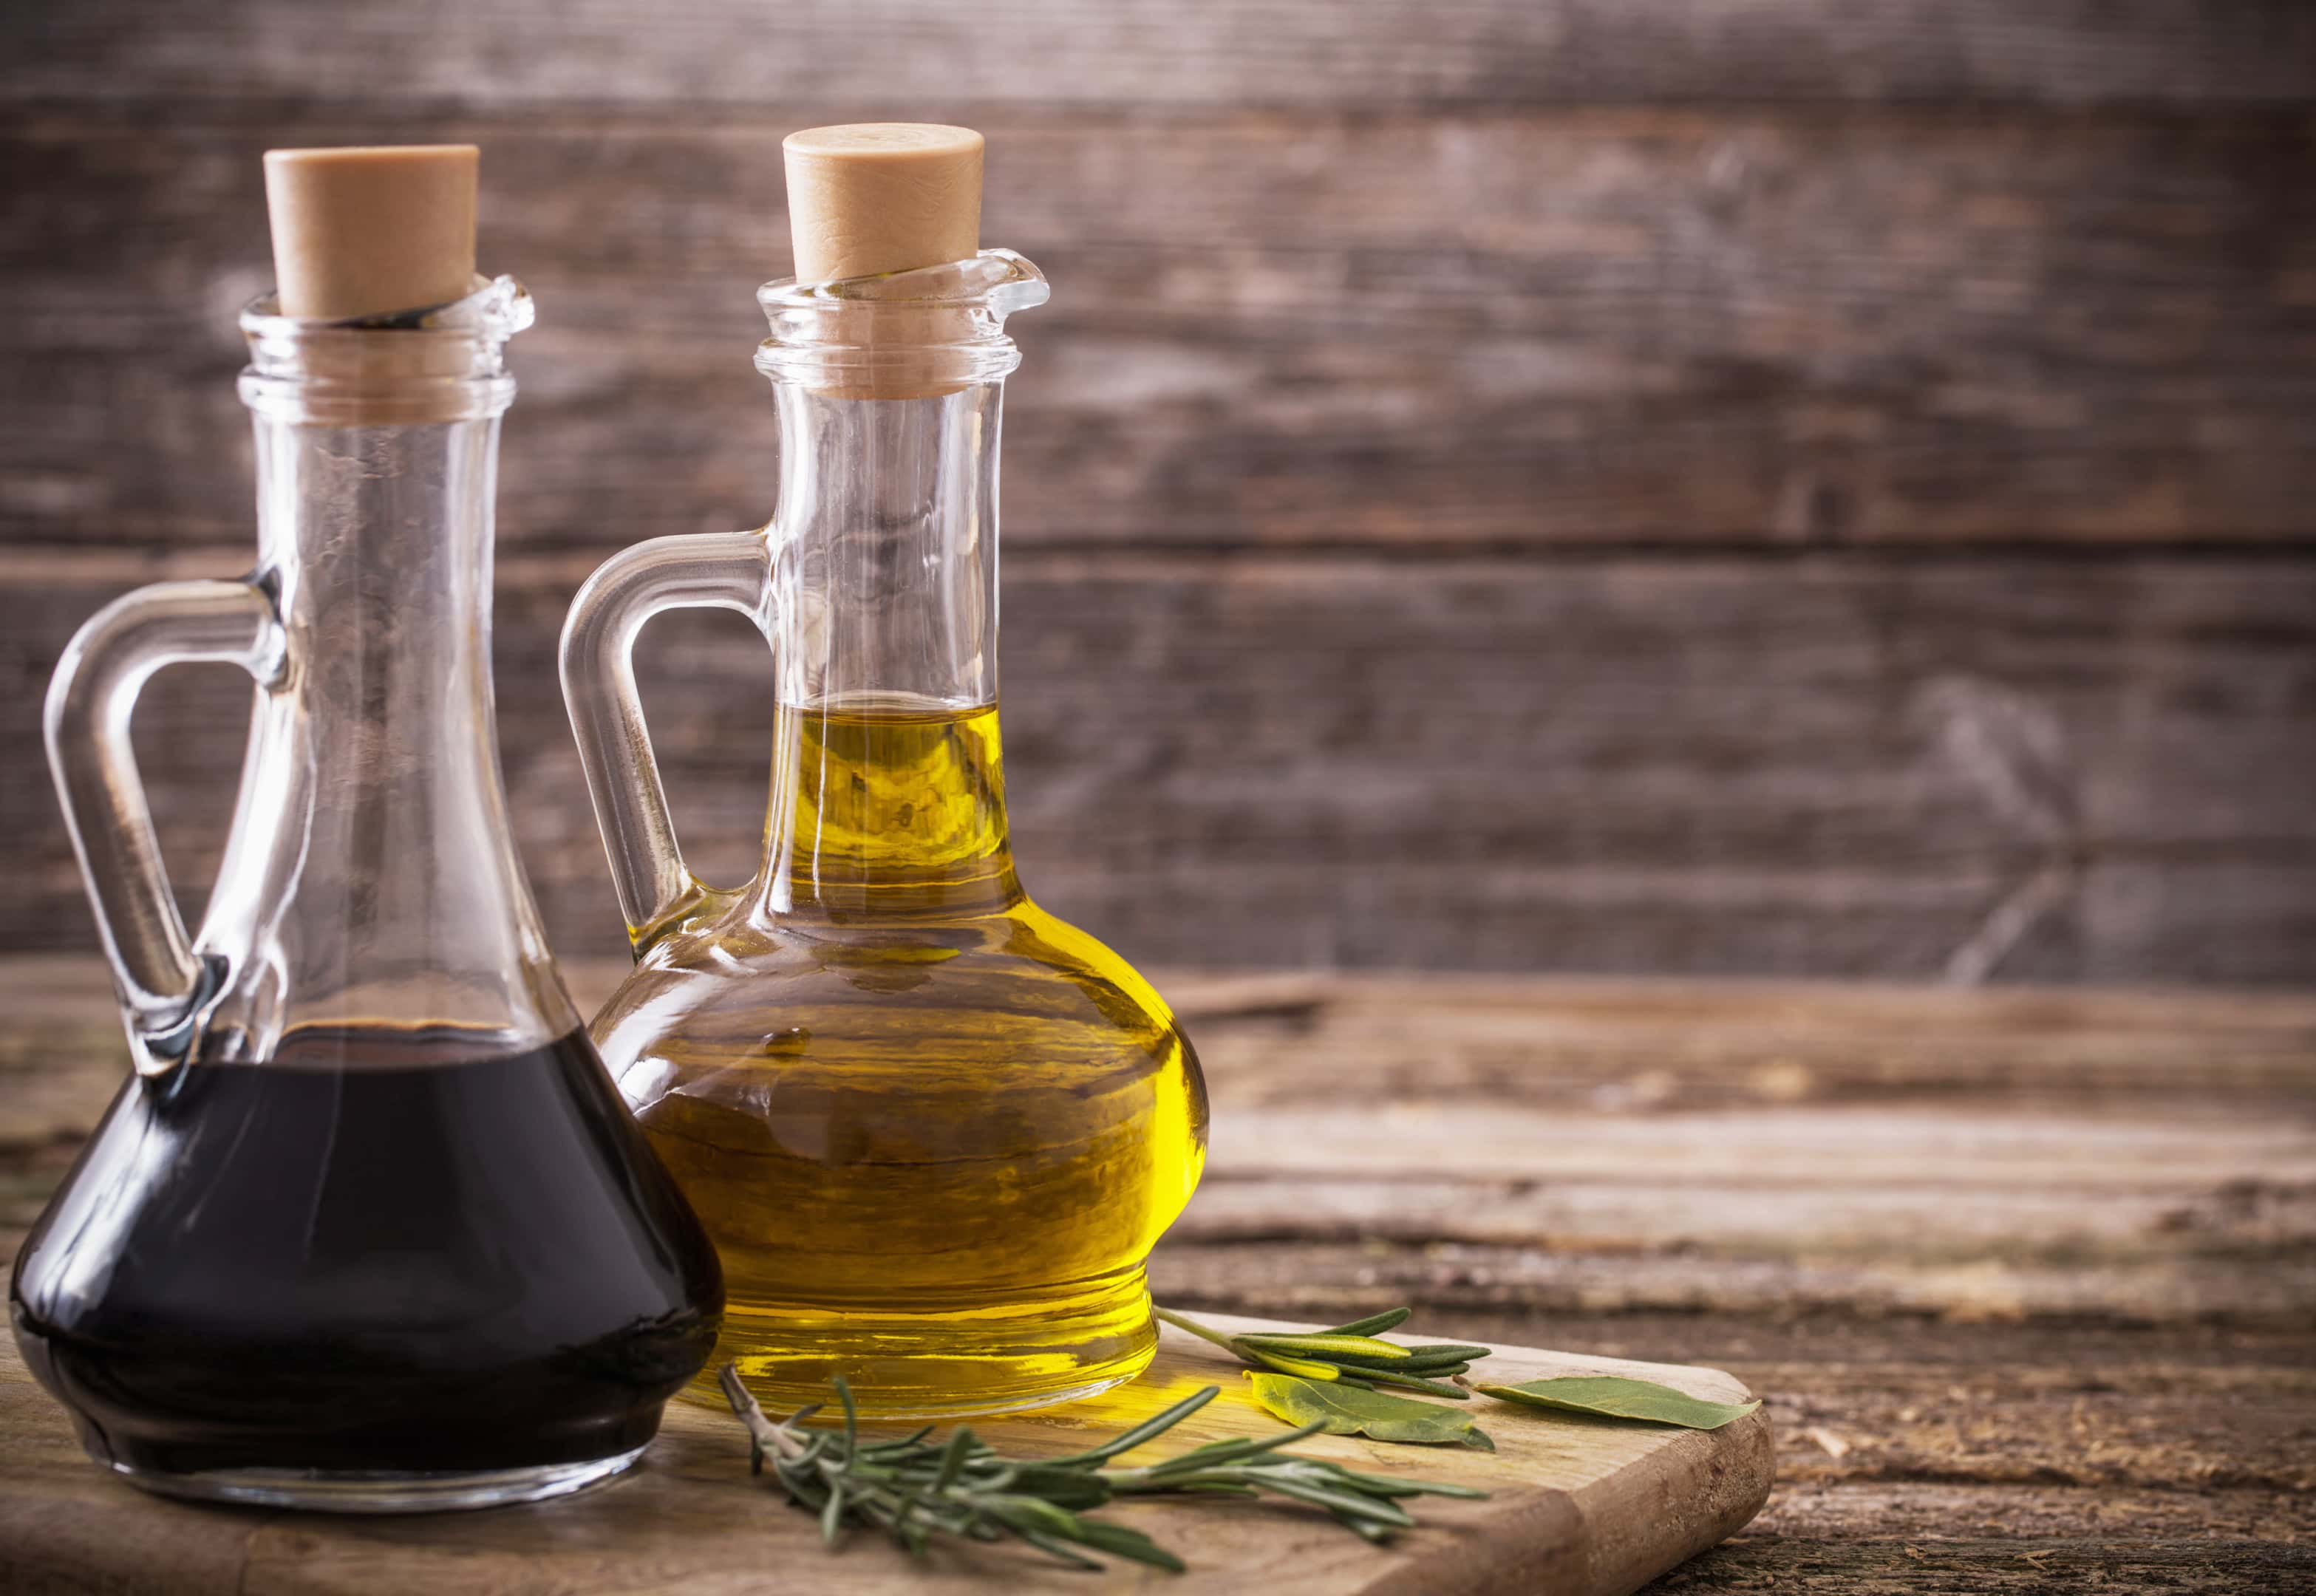 Balsamic vinegar and olive oil on wooden table